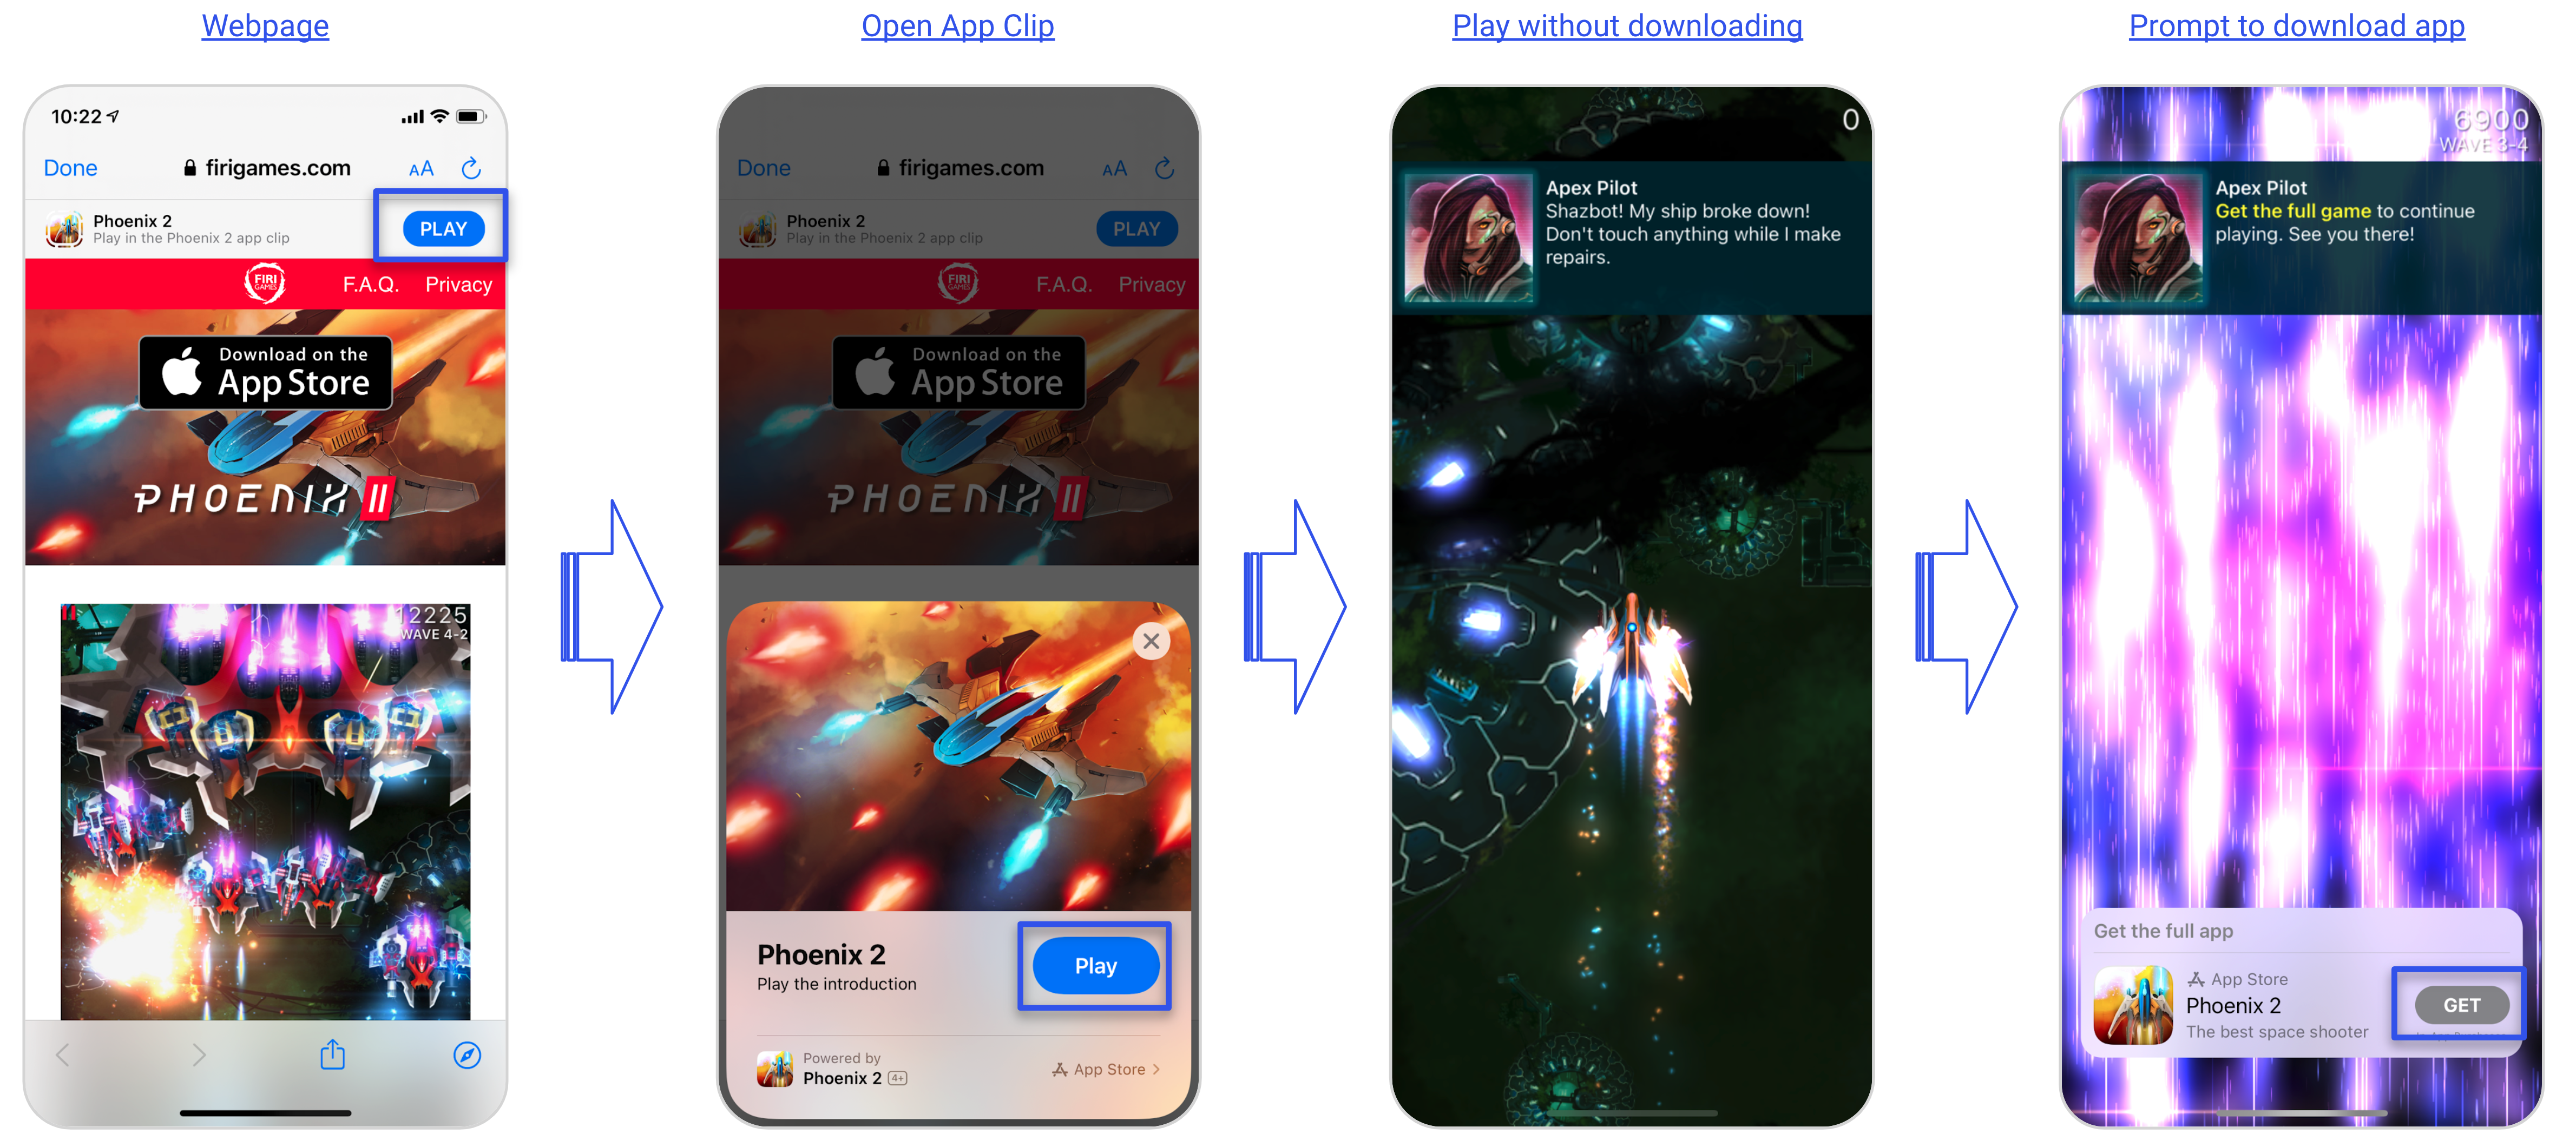 Example of Phoenix's 2 App Clip User Experience by Firi Games